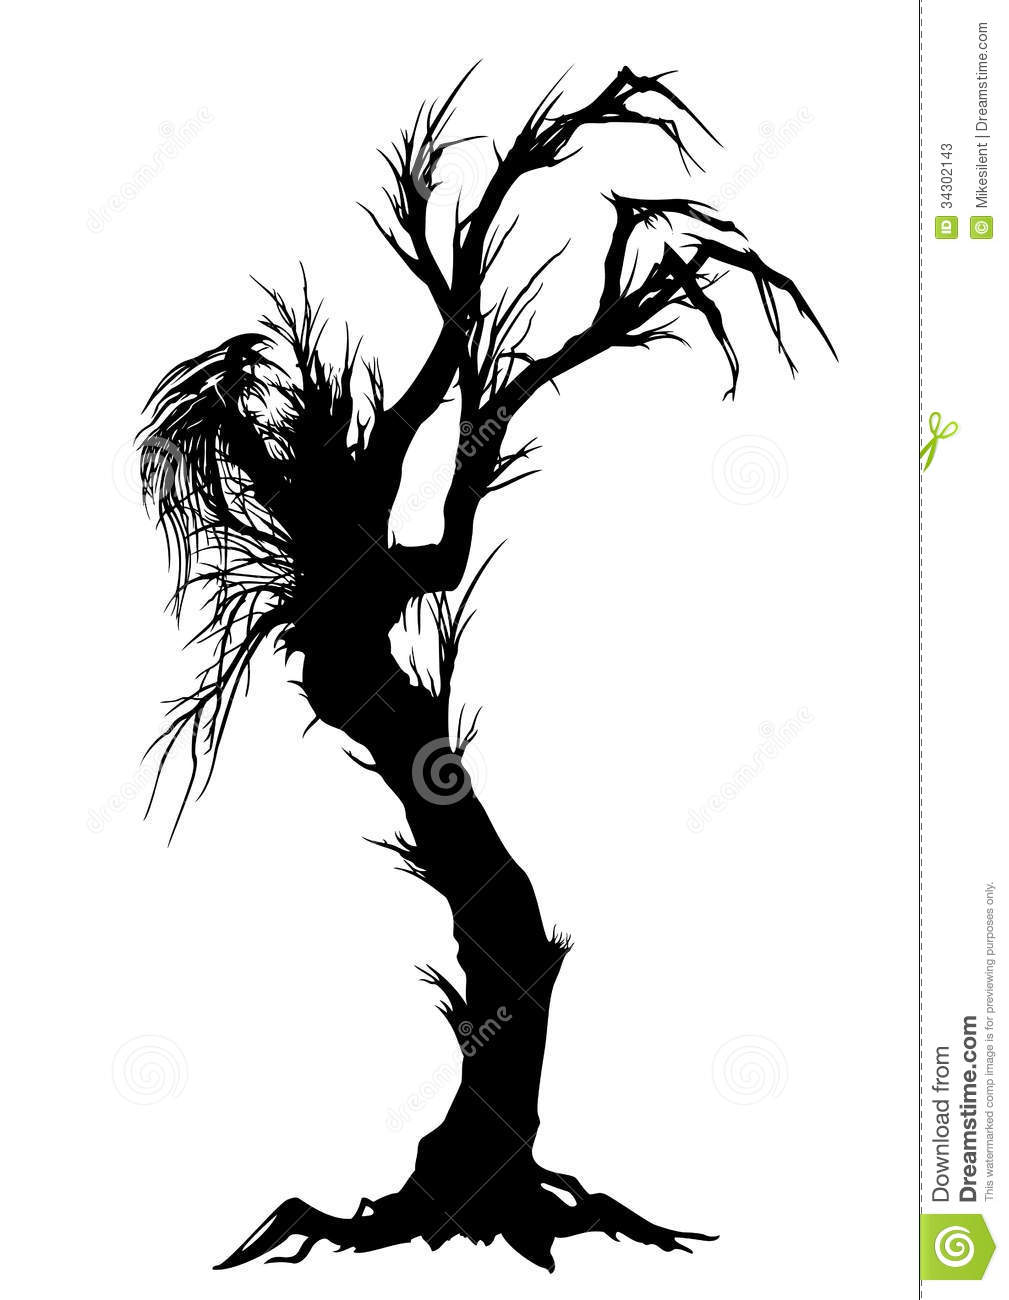 hight resolution of creepy tree silhouette vector images pictures spooky jpg 1009x1300 tree silouette clipart scary